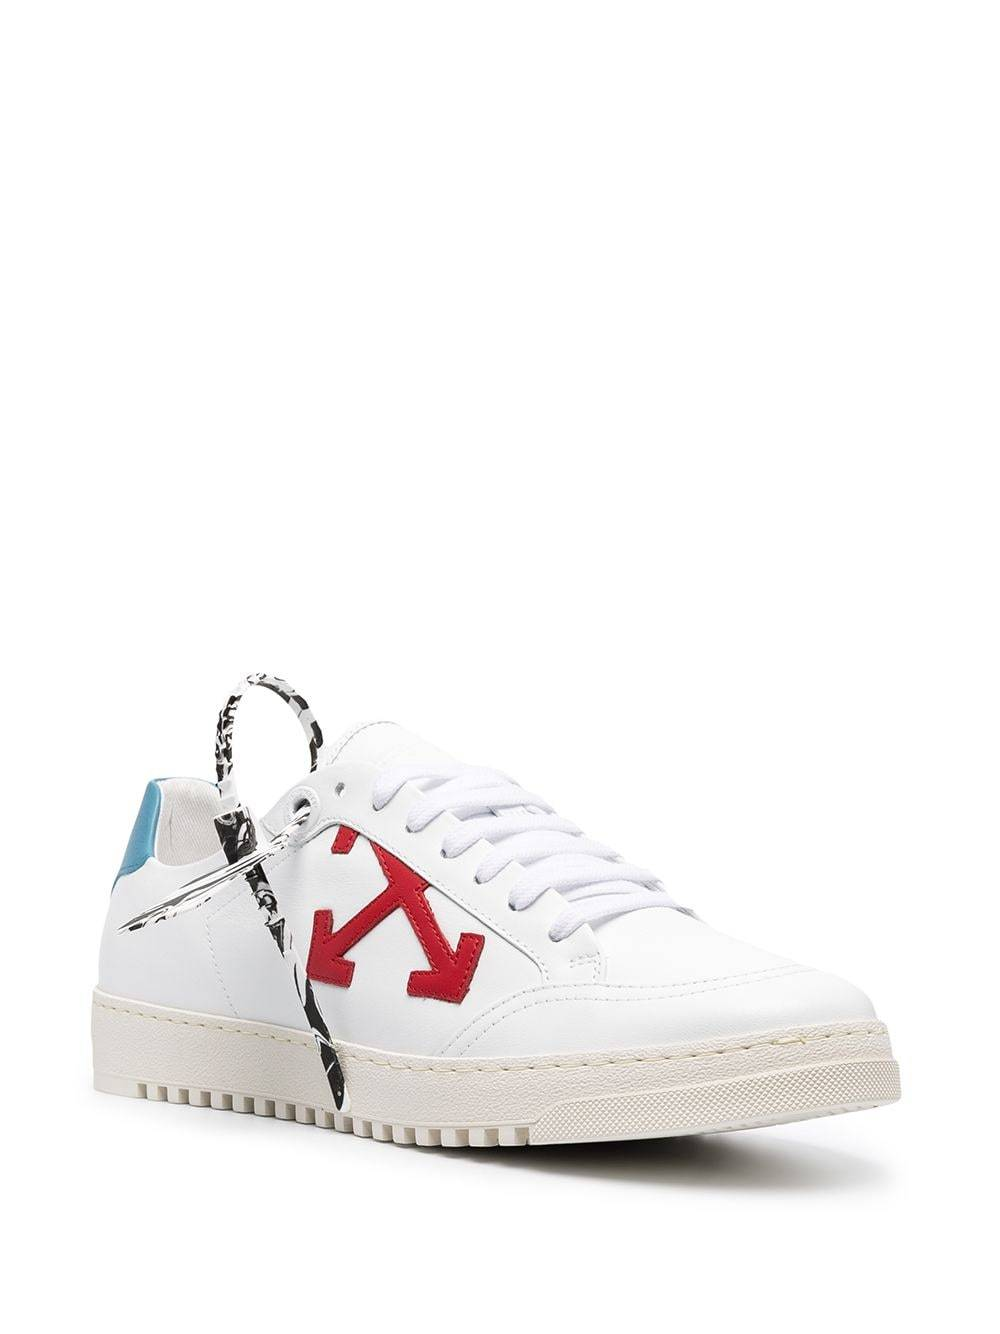 OFF-WHITE 2.0 Sneaker White/Red